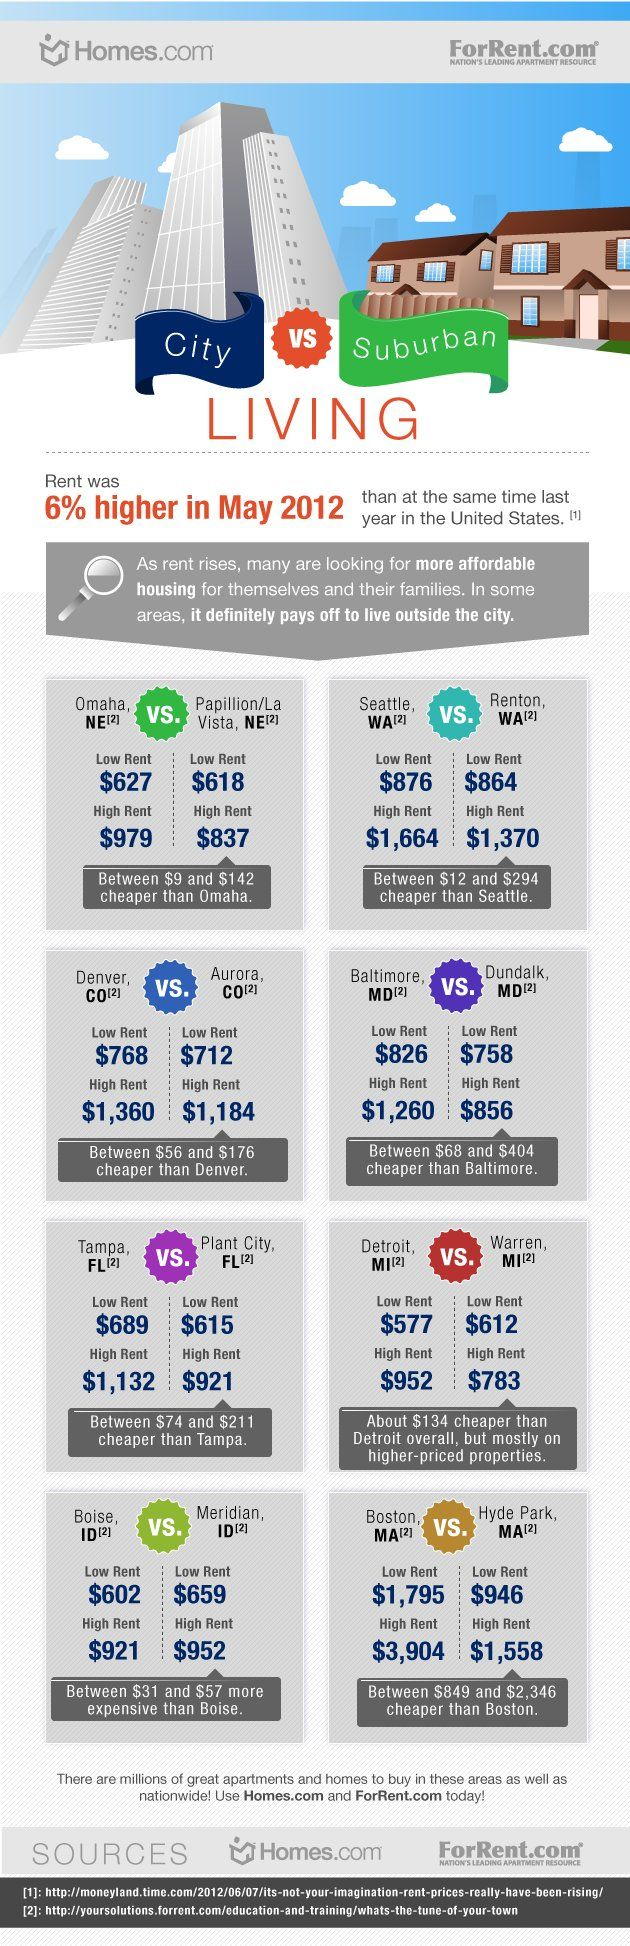 With rents continuing to climb nationwide -- they were up more than 5 percent in October compared with the same month in 2011 -- consumers are forced to be more cost-conscious than ever. Our friends over at ForRent.com provided Yahoo! Homes' Spaces blog with this infographic, examining several metro areas from coast to coast to determine the cost difference between city and suburban rents. Urban centers, with their unbeatable character and amenities, usually tip the scales. But not…